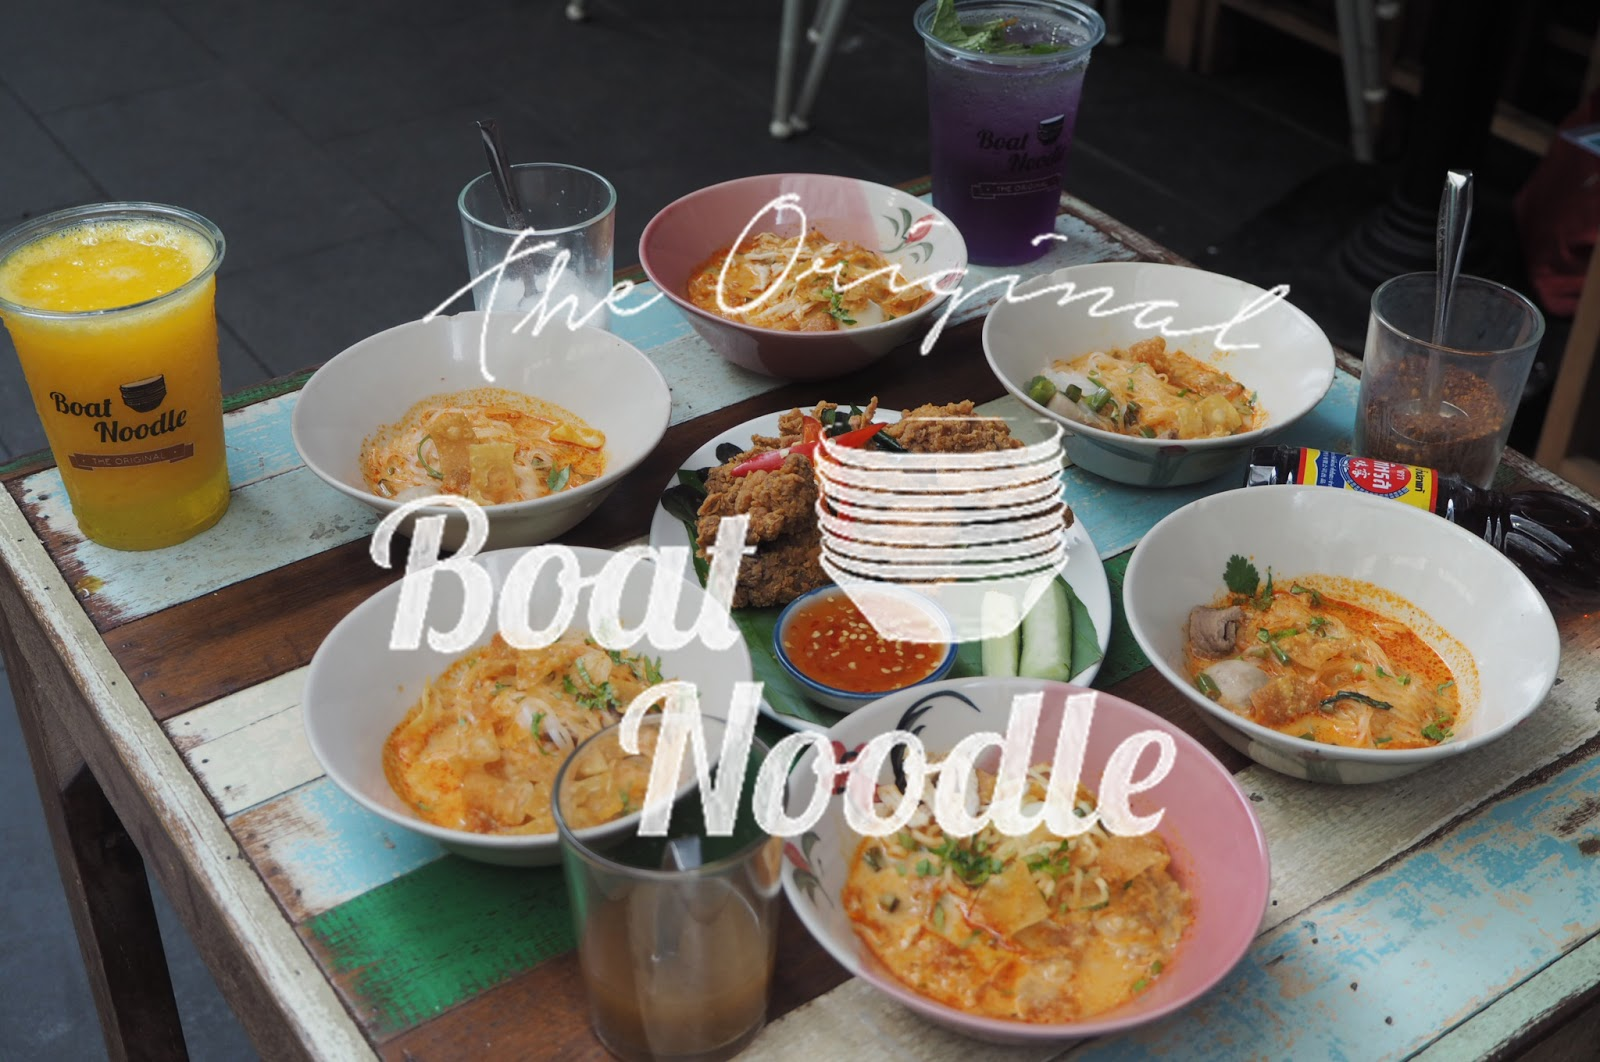 [Food Review] Prosperity YUM Menu @ Boat Noodle, Empire Damansara